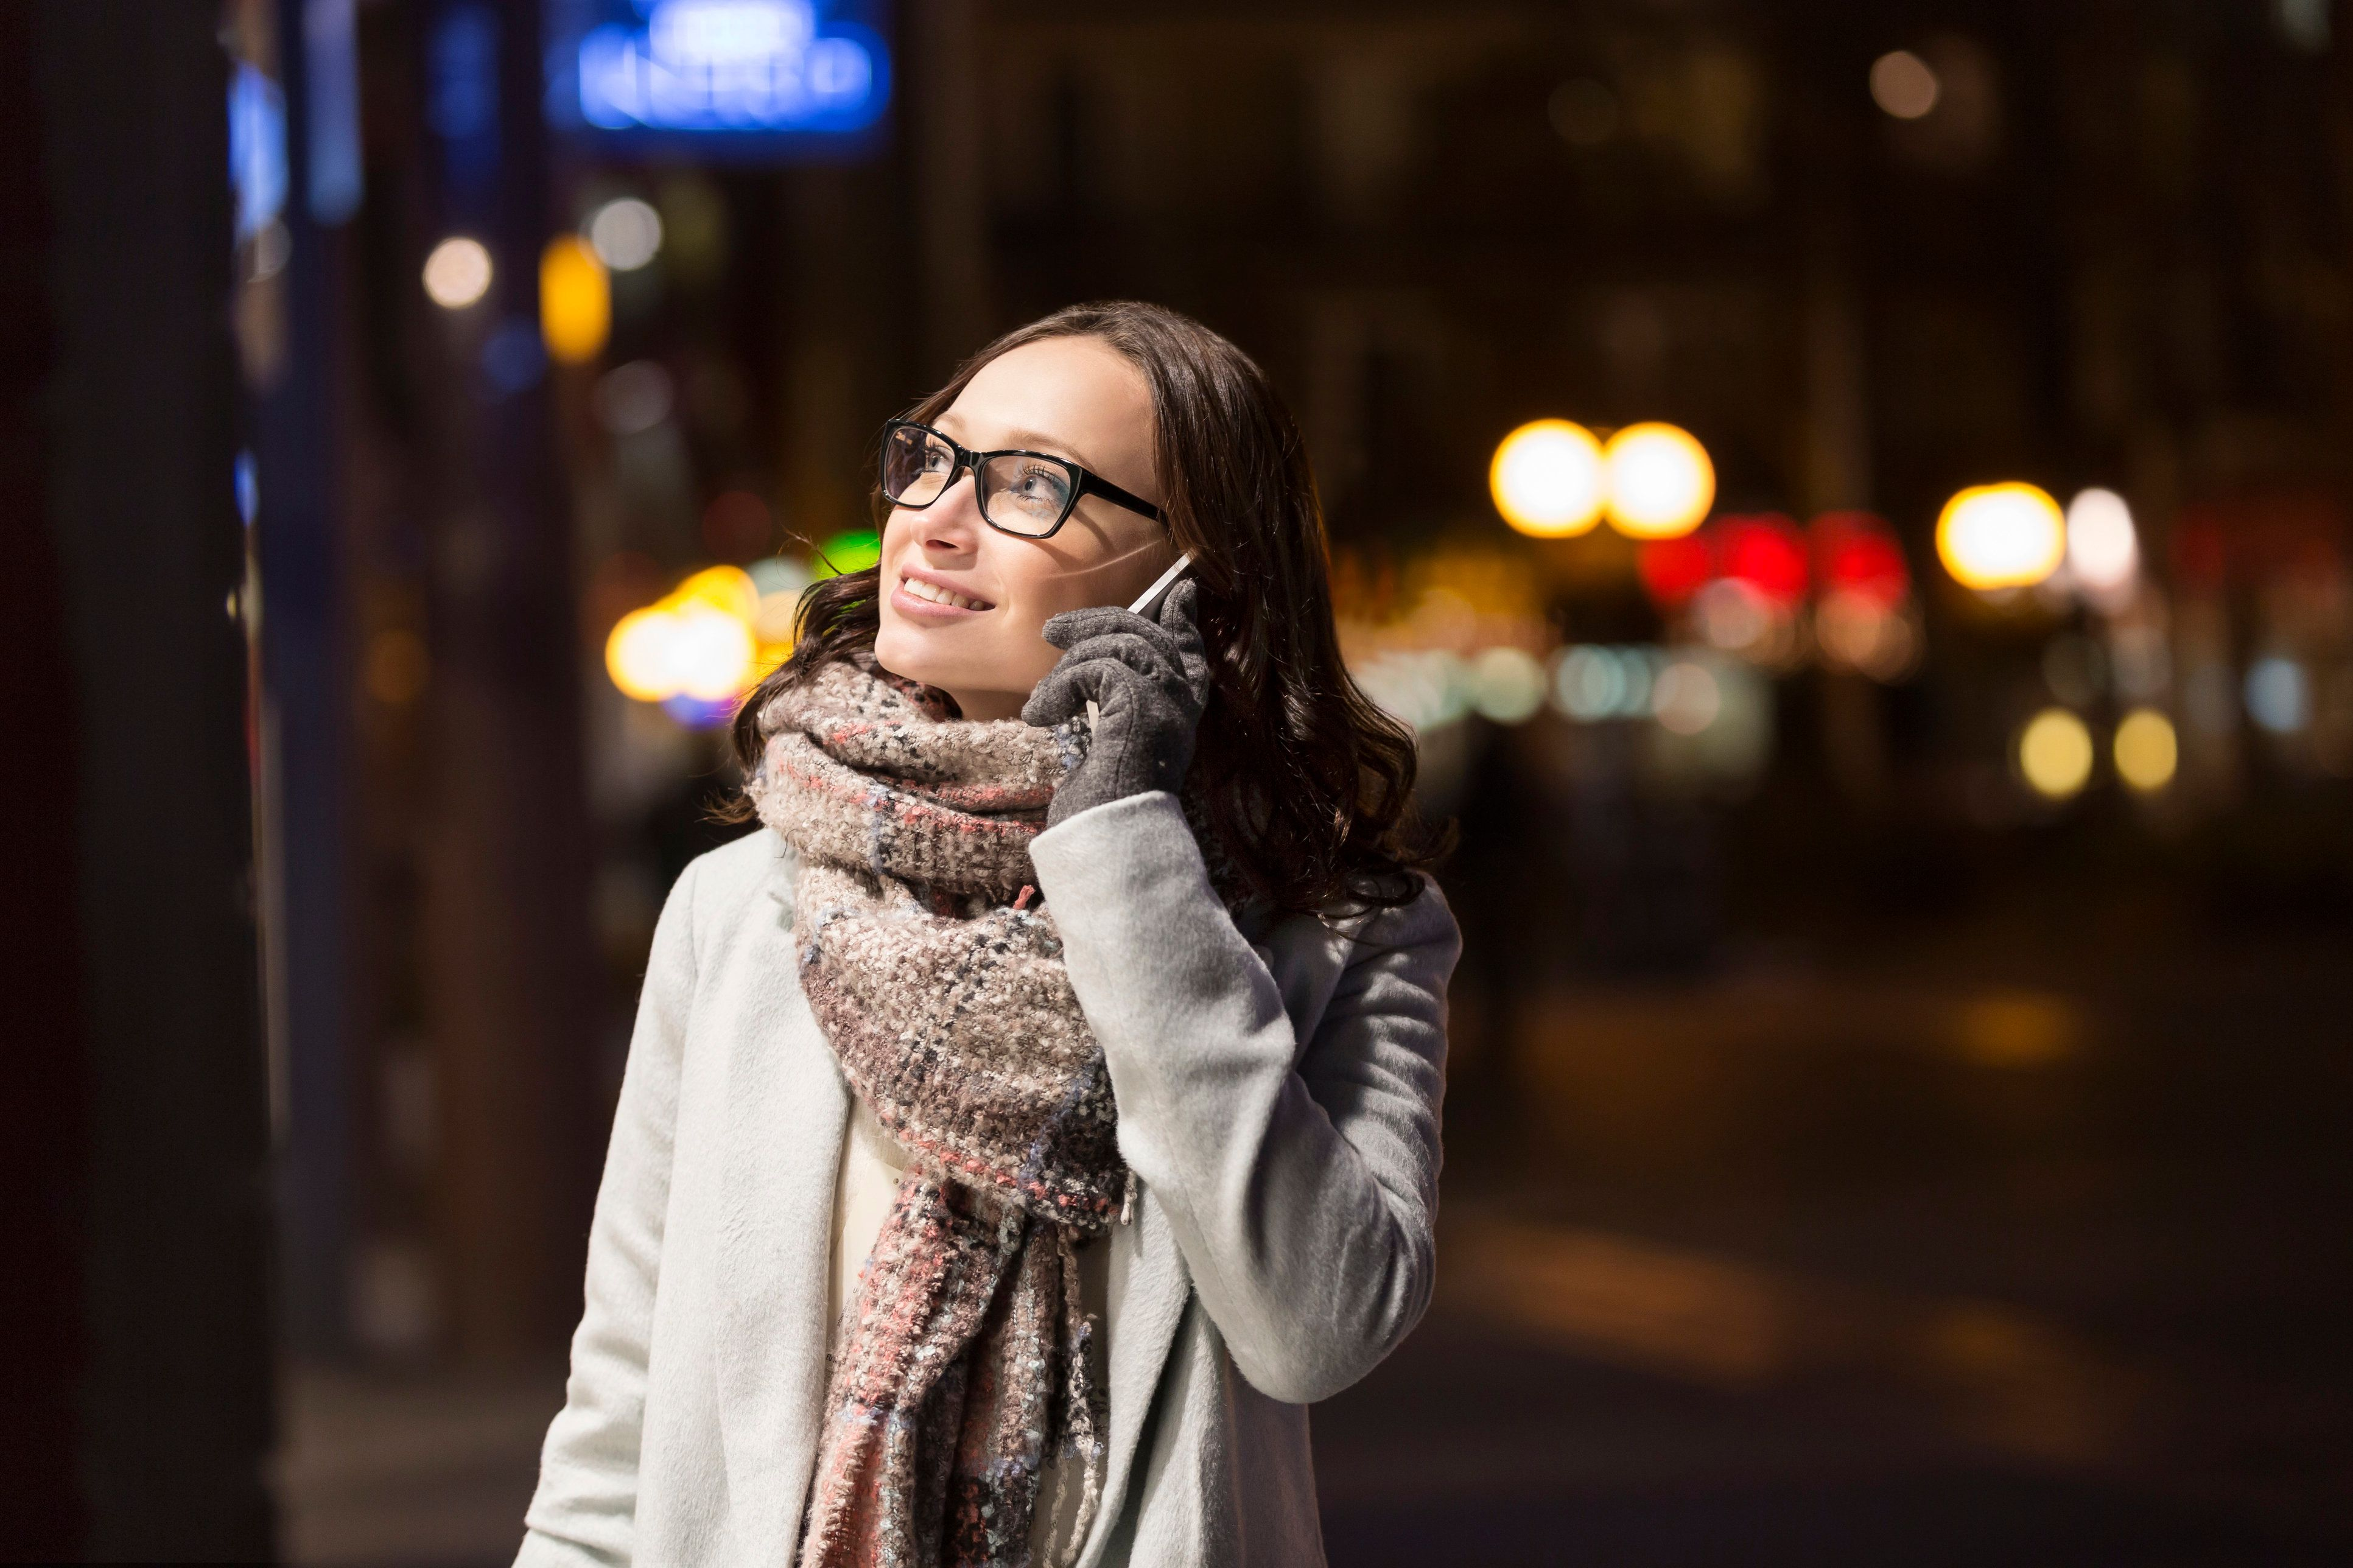 Young woman on shopping tour by night